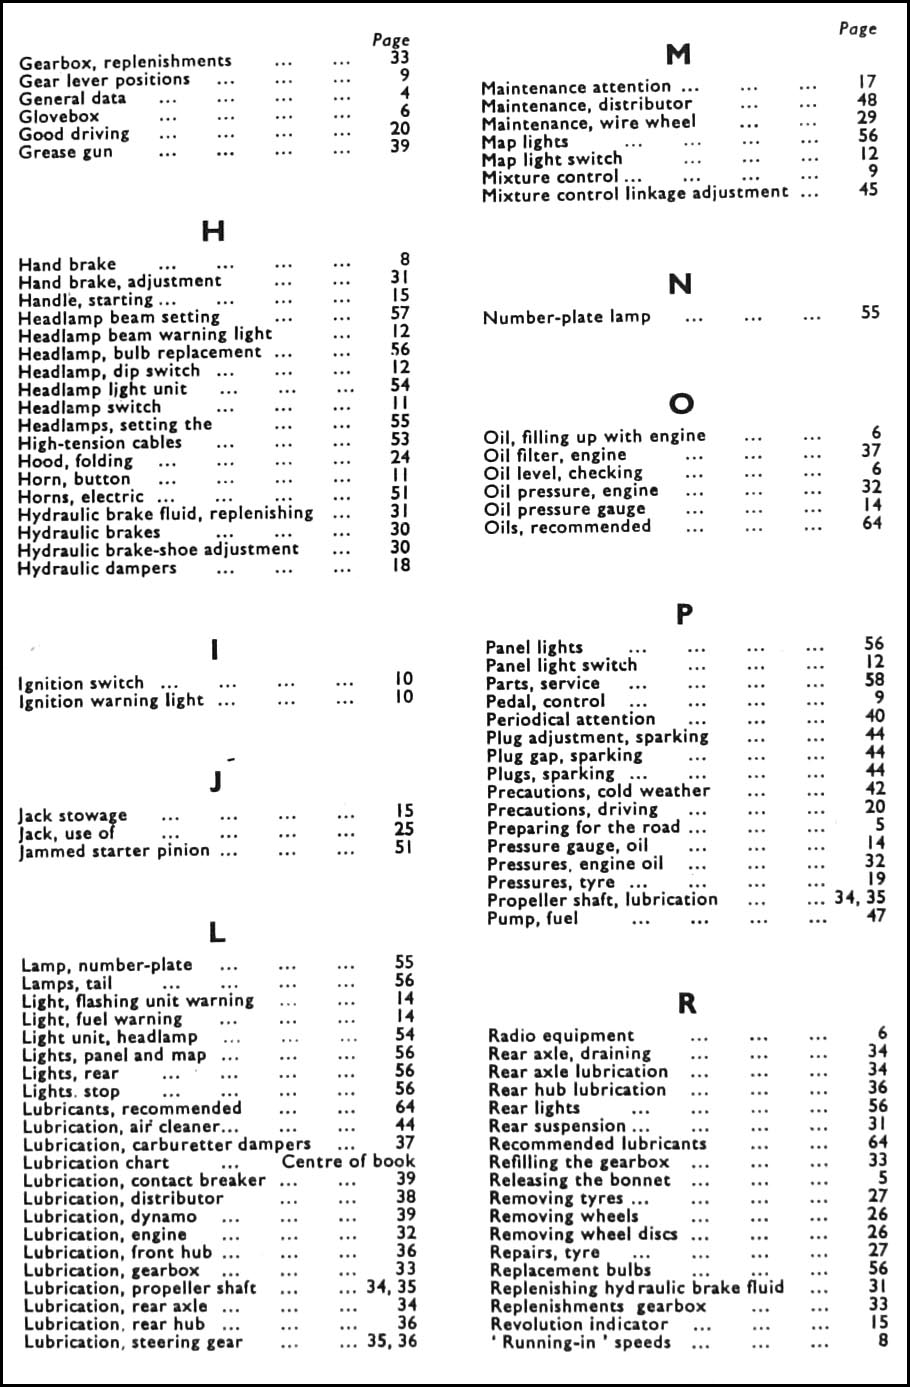 1954 1955 Mg Midget Tf Owners Manual Reprint Alternator Wiring Diagram Table Of Contents Page 2